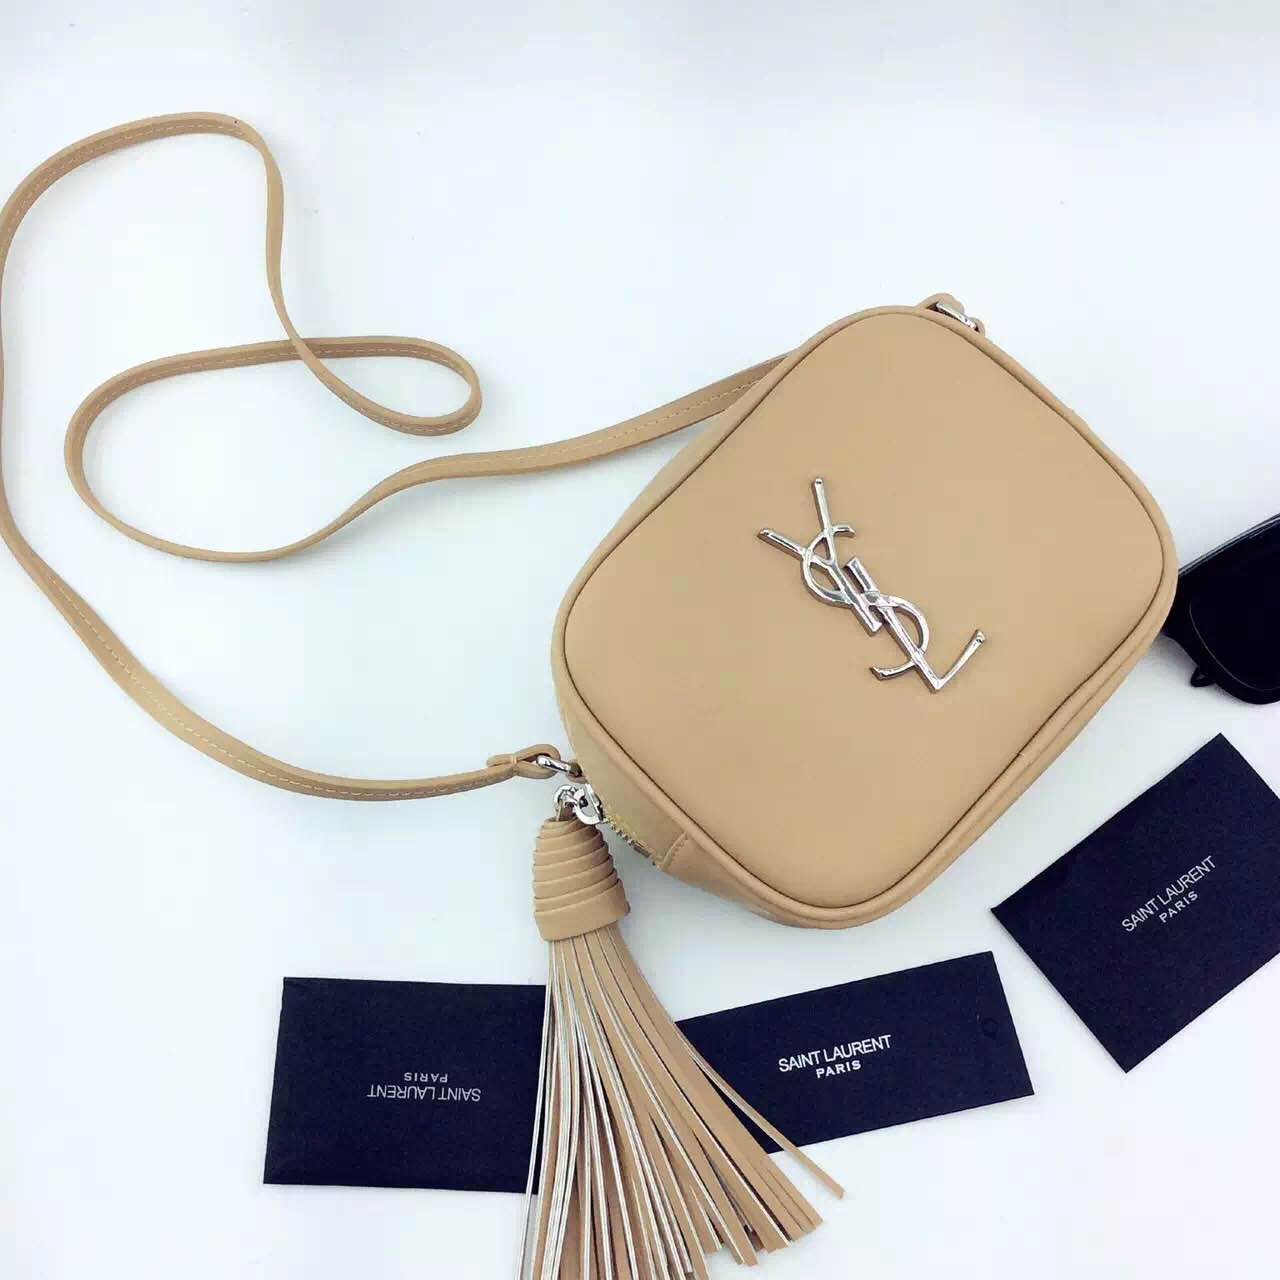 New Arrival!2016 Cheap YSL Out Sale with Free Shipping-Saint Laurent Monogram Medium Blogger Bag in Dark Beige Leather